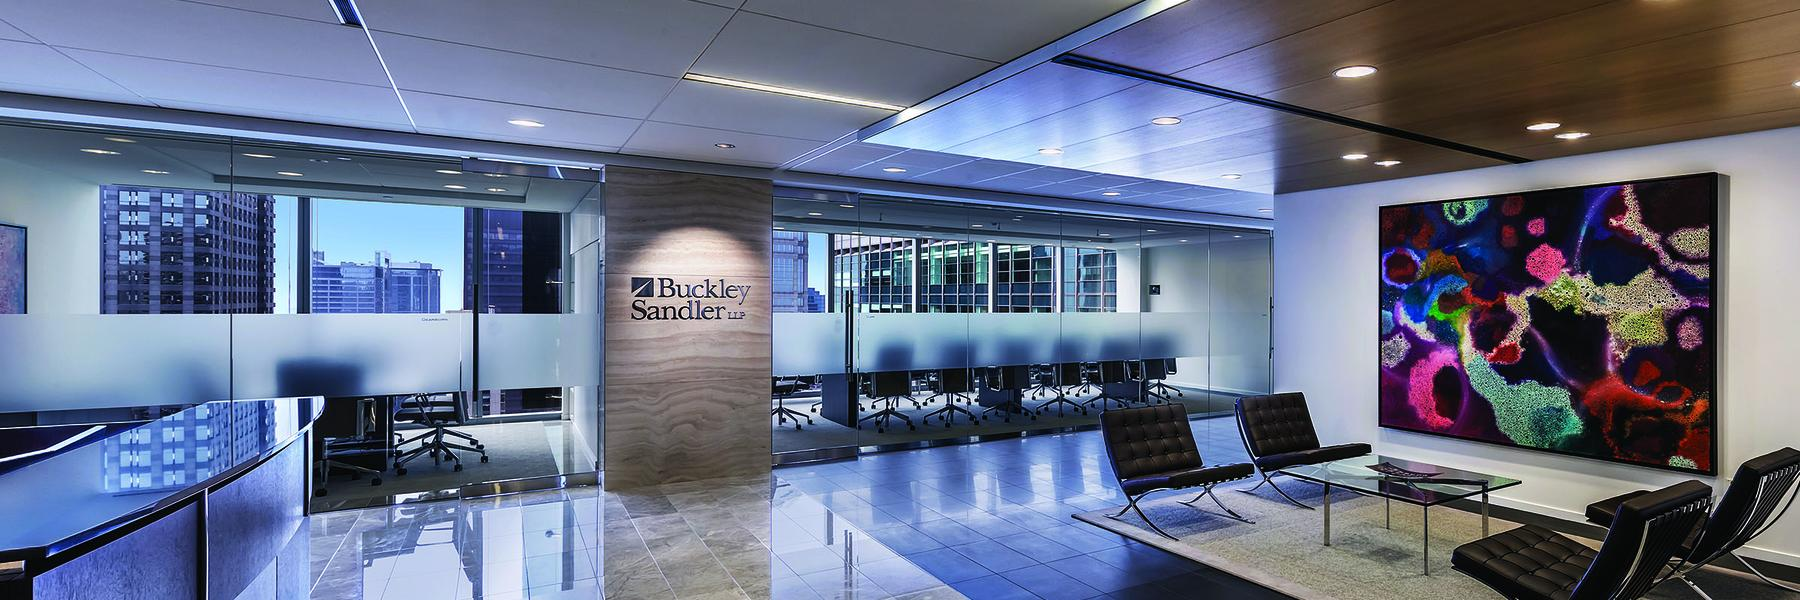 Buckley Sandler Chicago lobby